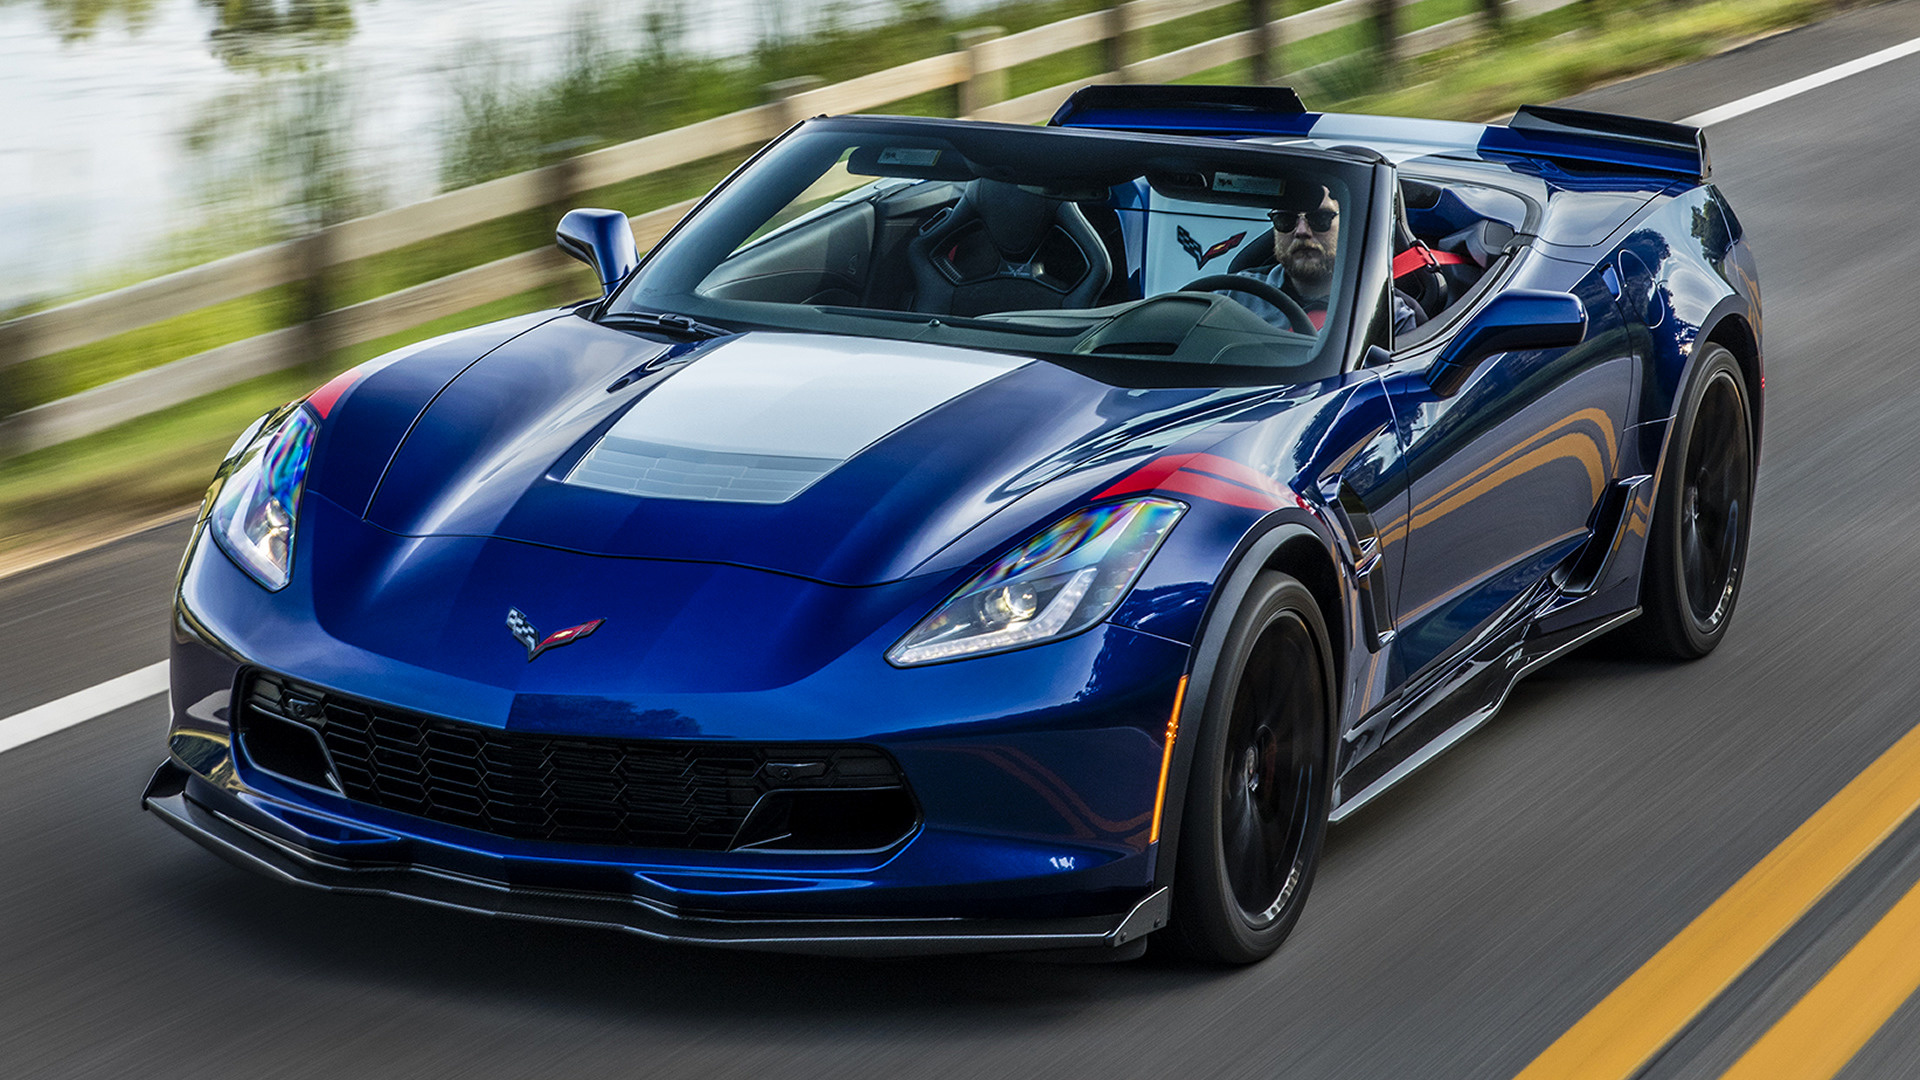 Corvette grand sport 2017 wallpapers and hd images car pixel - Chevrolet Corvette Grand Sport Convertible 2017